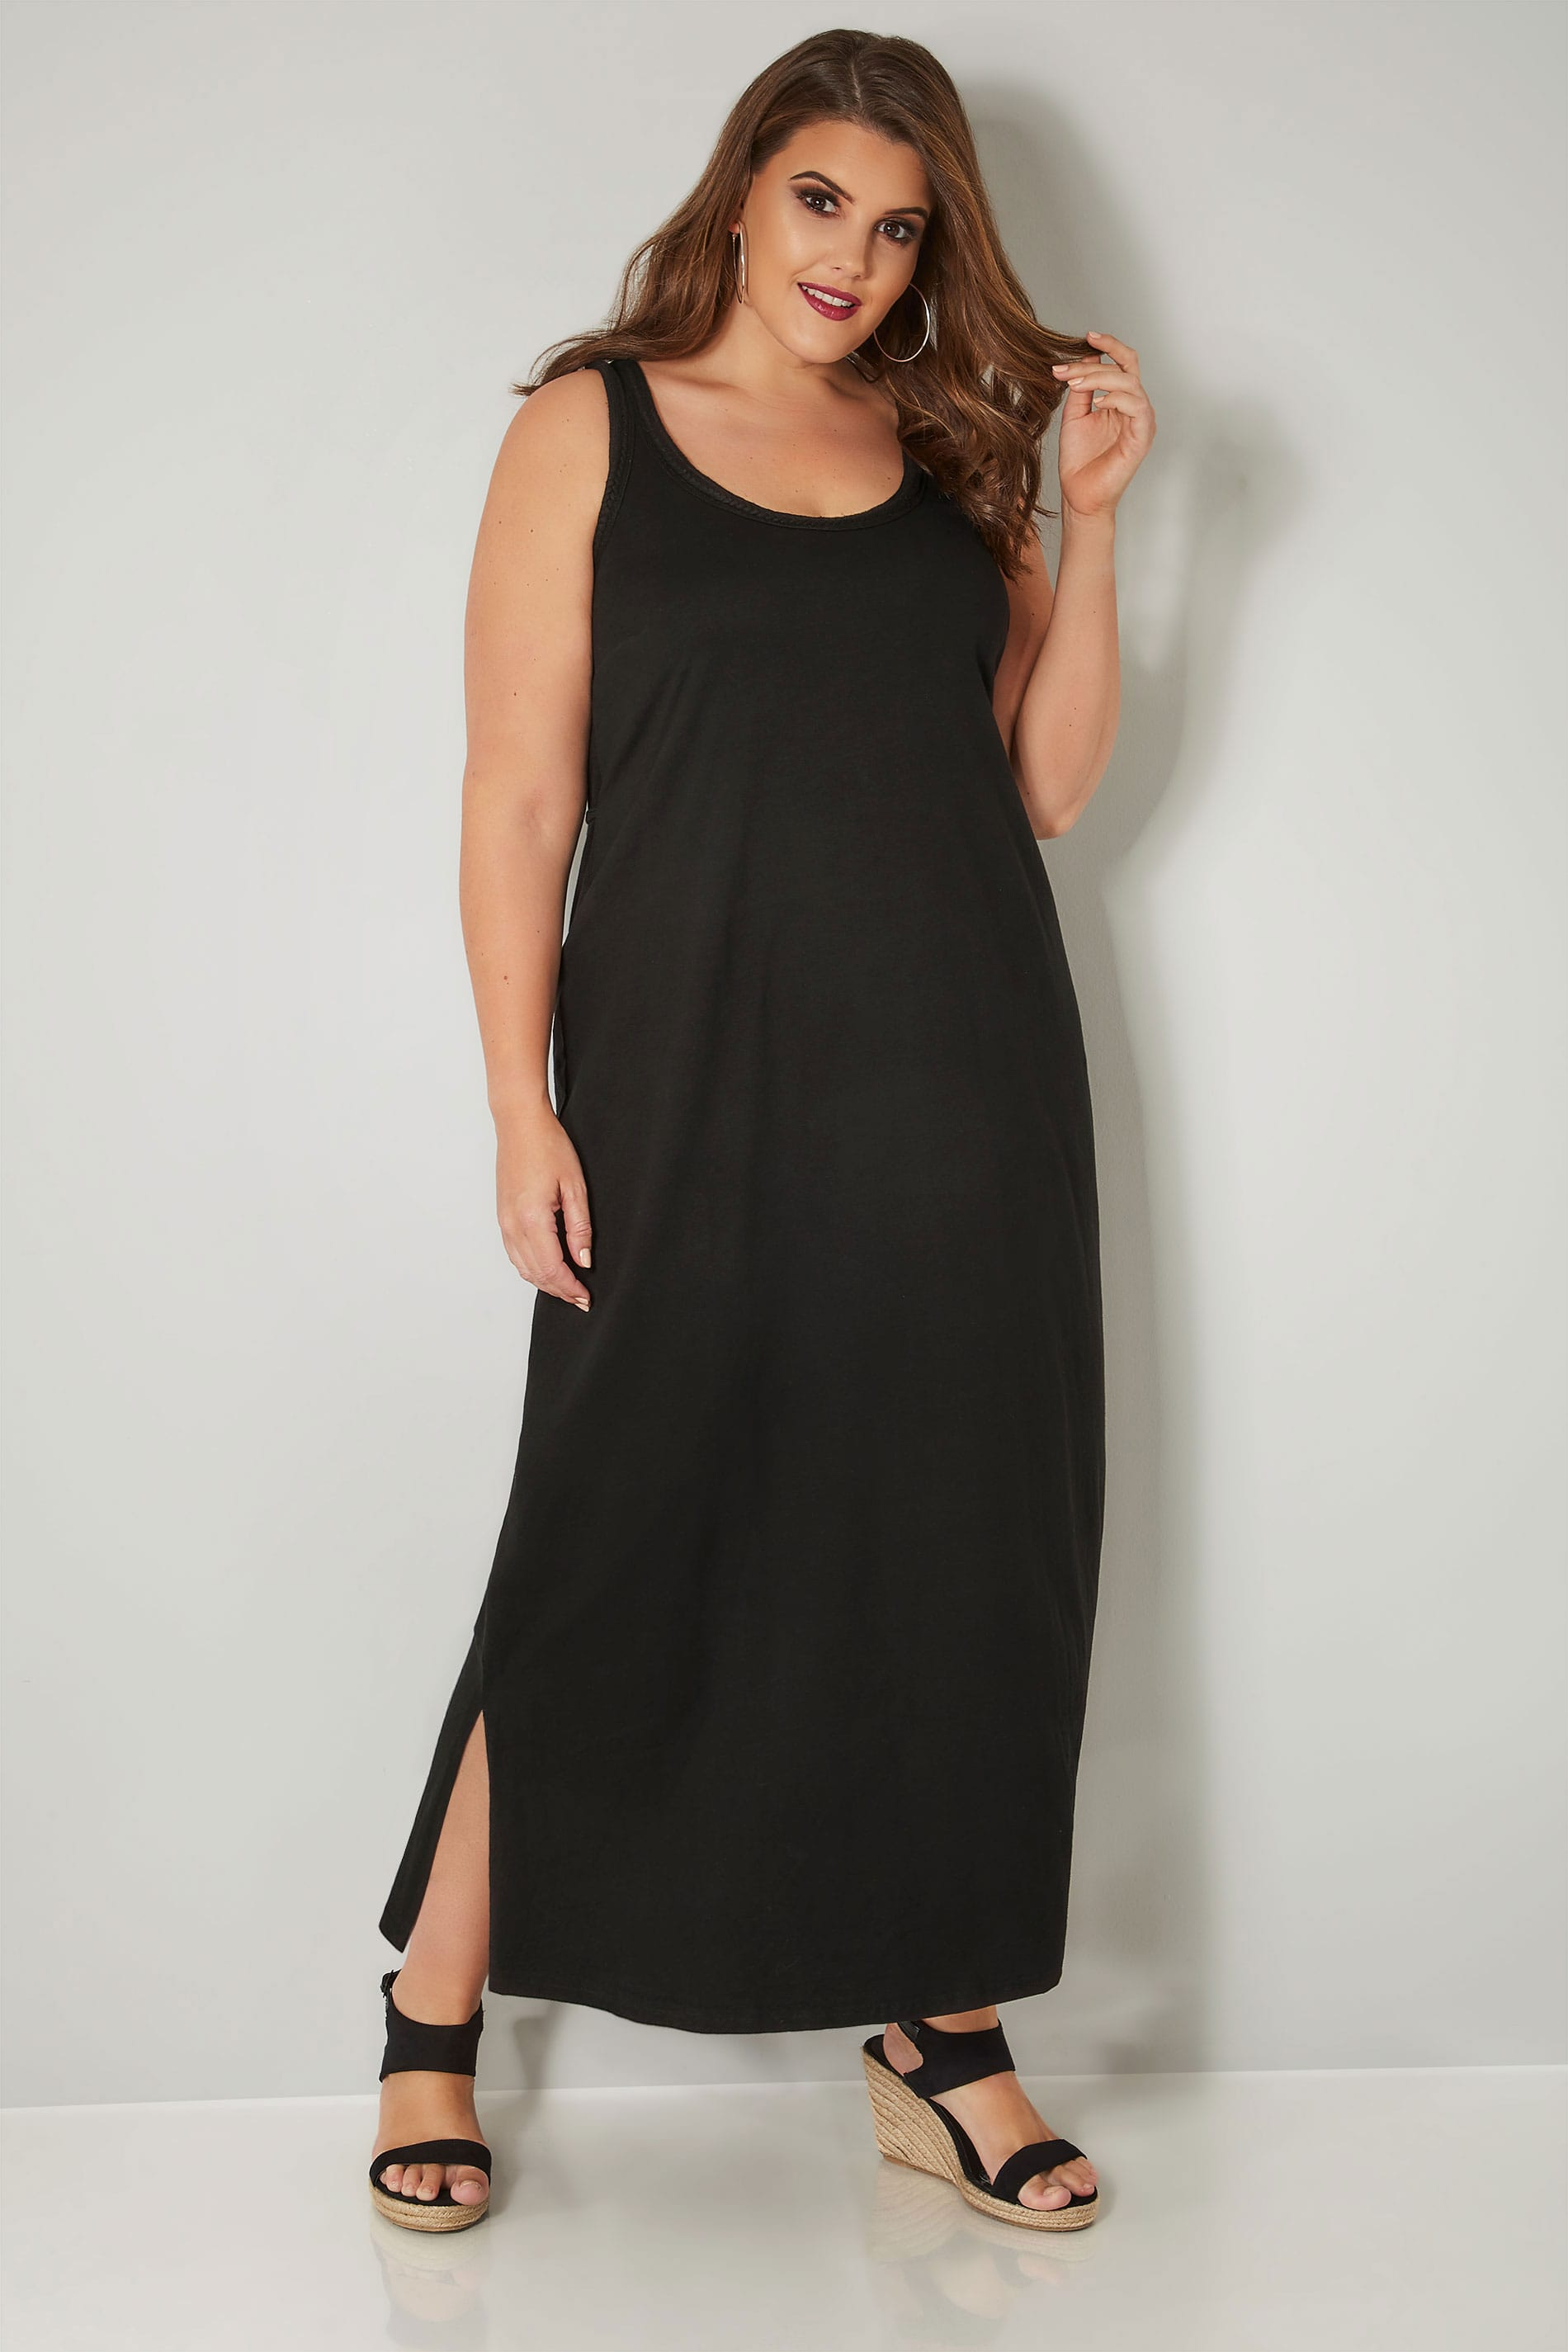 black sleeveless maxi dress with plait trim plus size 16. Black Bedroom Furniture Sets. Home Design Ideas